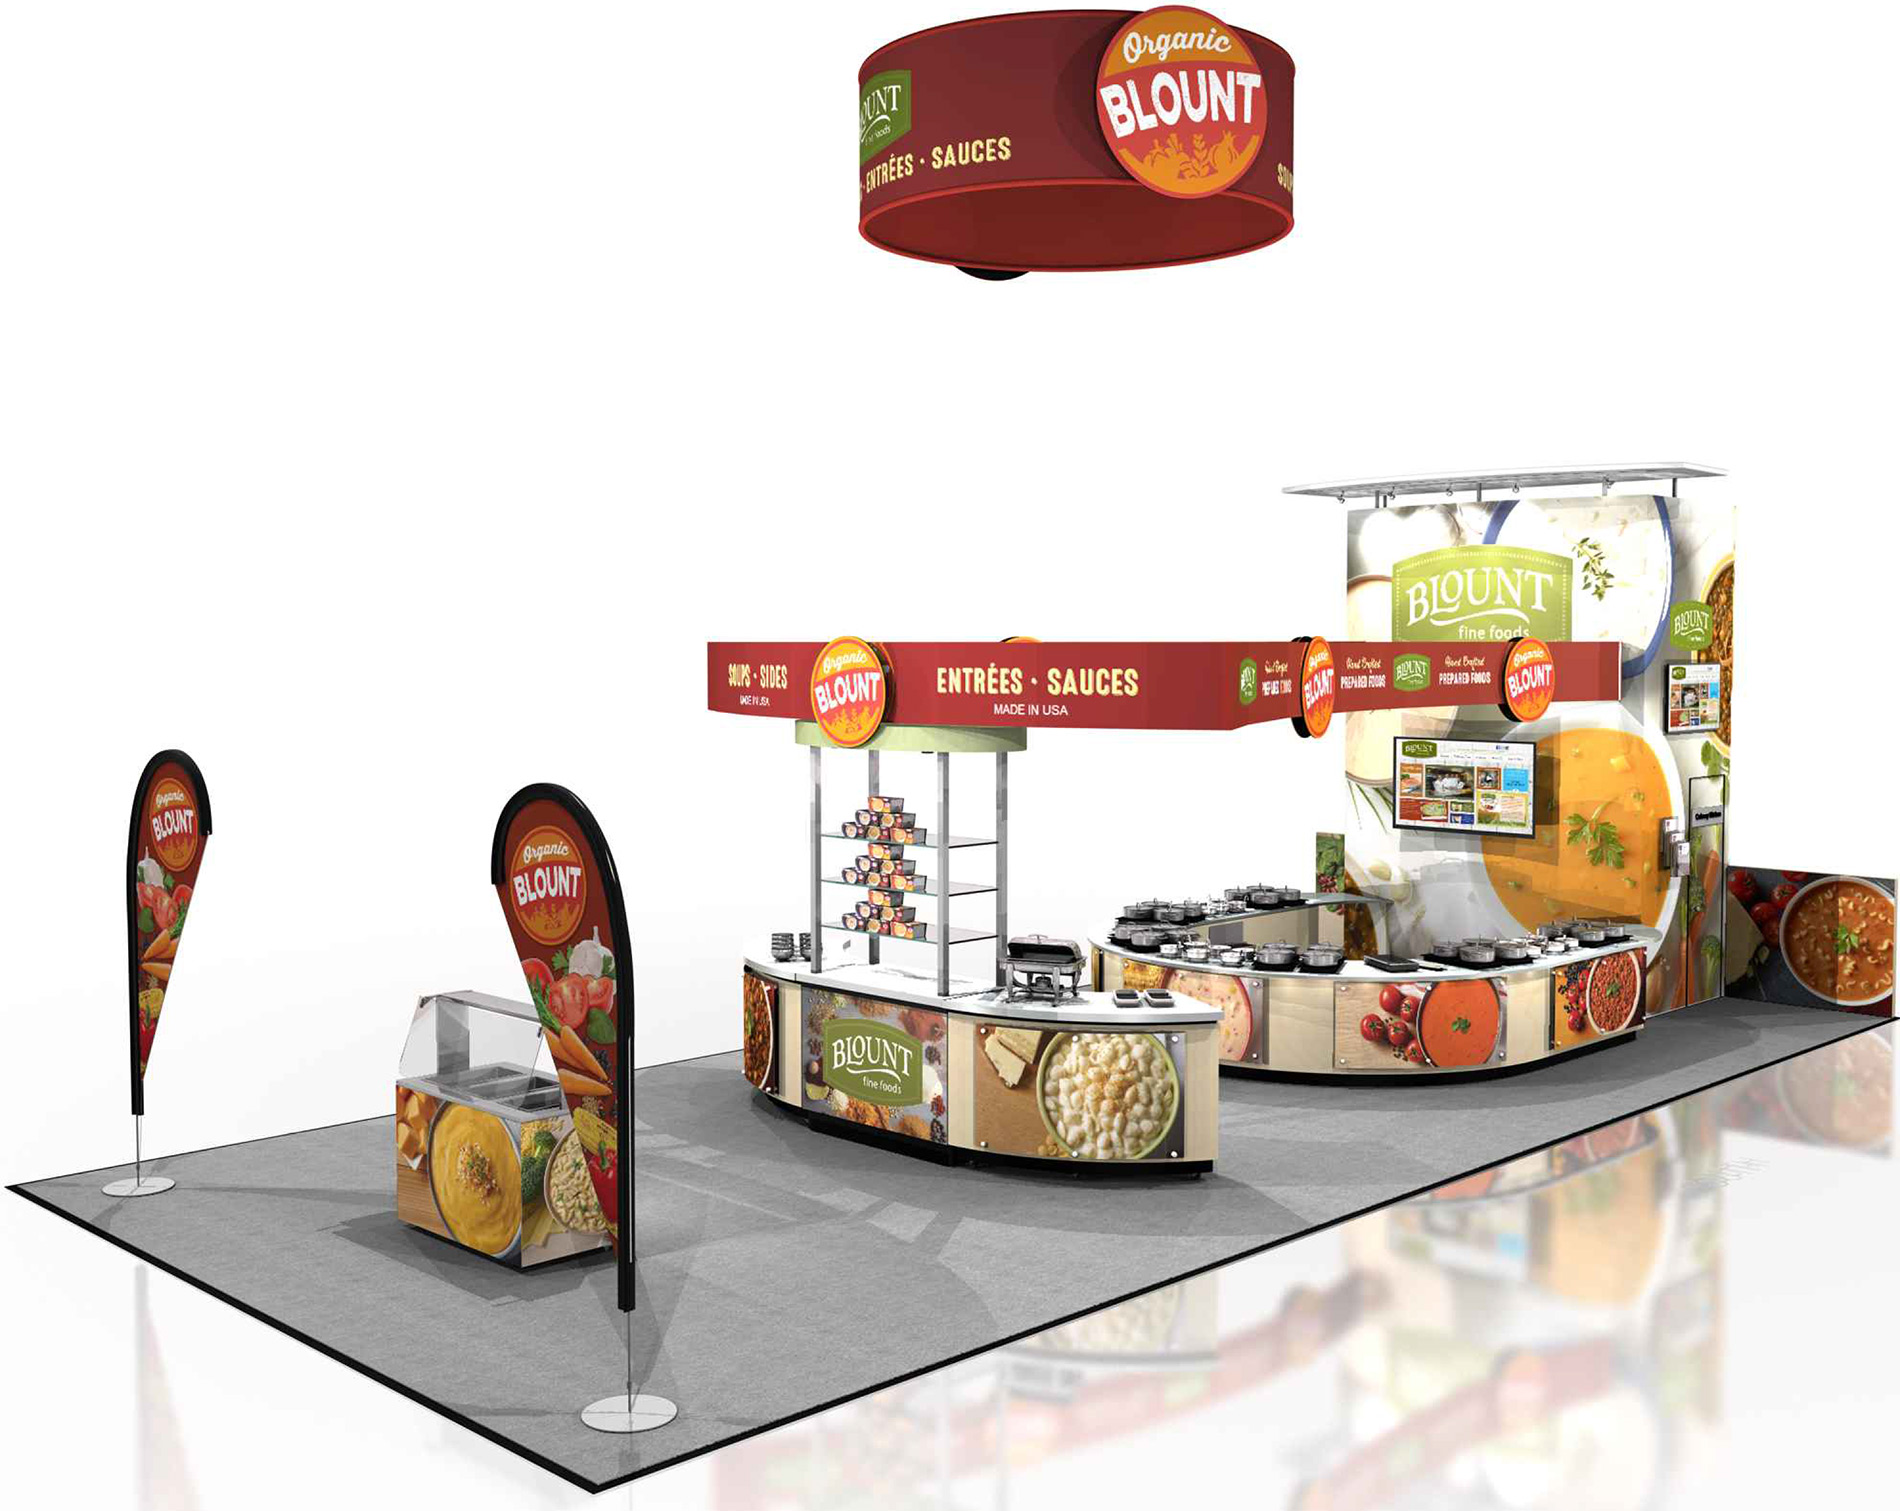 This is the 2016 Blount Fine Foods tradeshow booth, which is skinned to showcase our new Blount Organic retail brand. Visitors to this year's ExpoEast should come see us at Booth #426